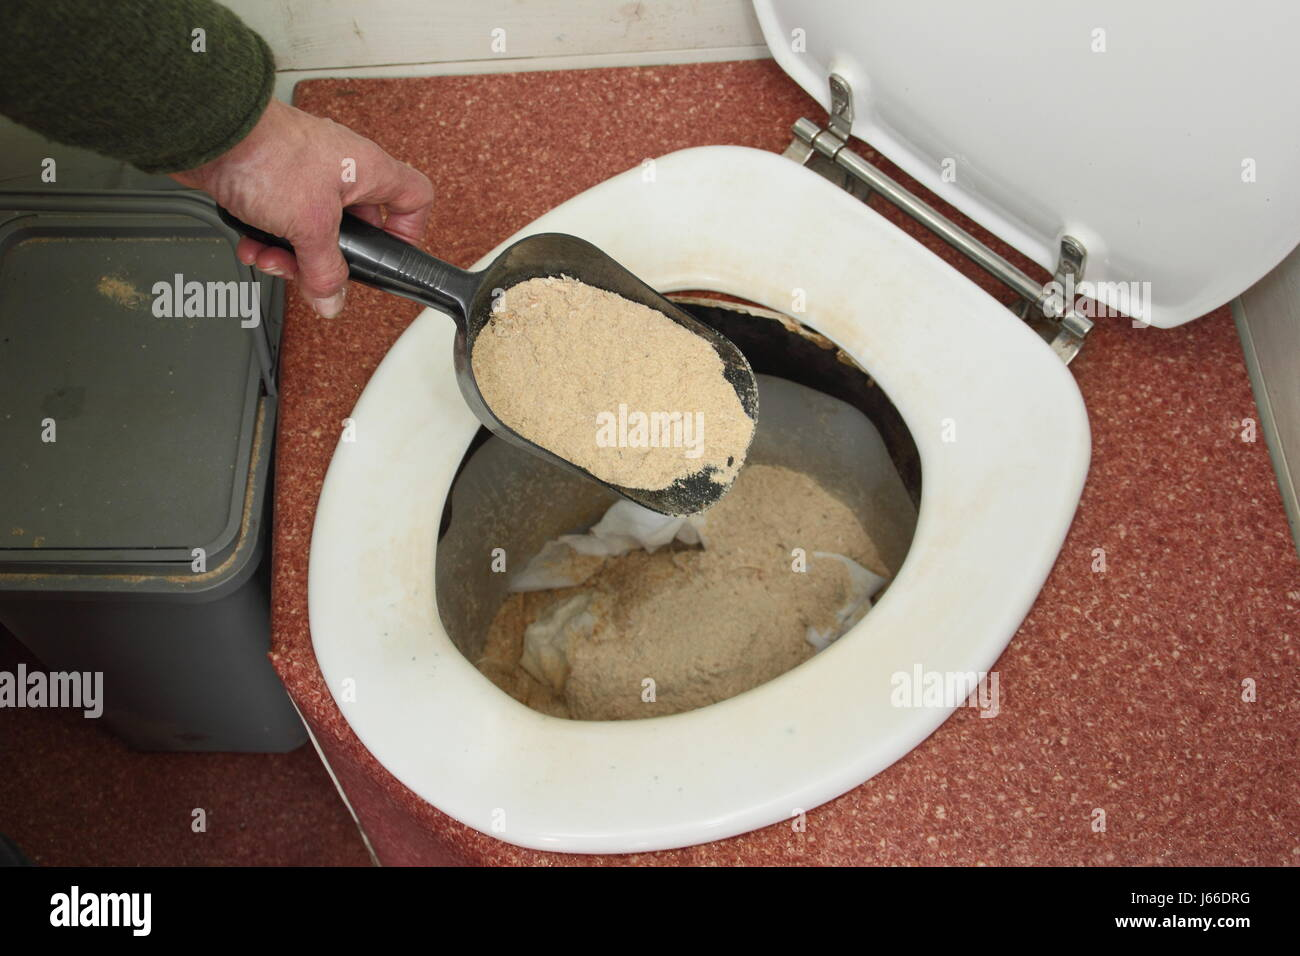 Sawdust is sprinkled into a working composting toilet